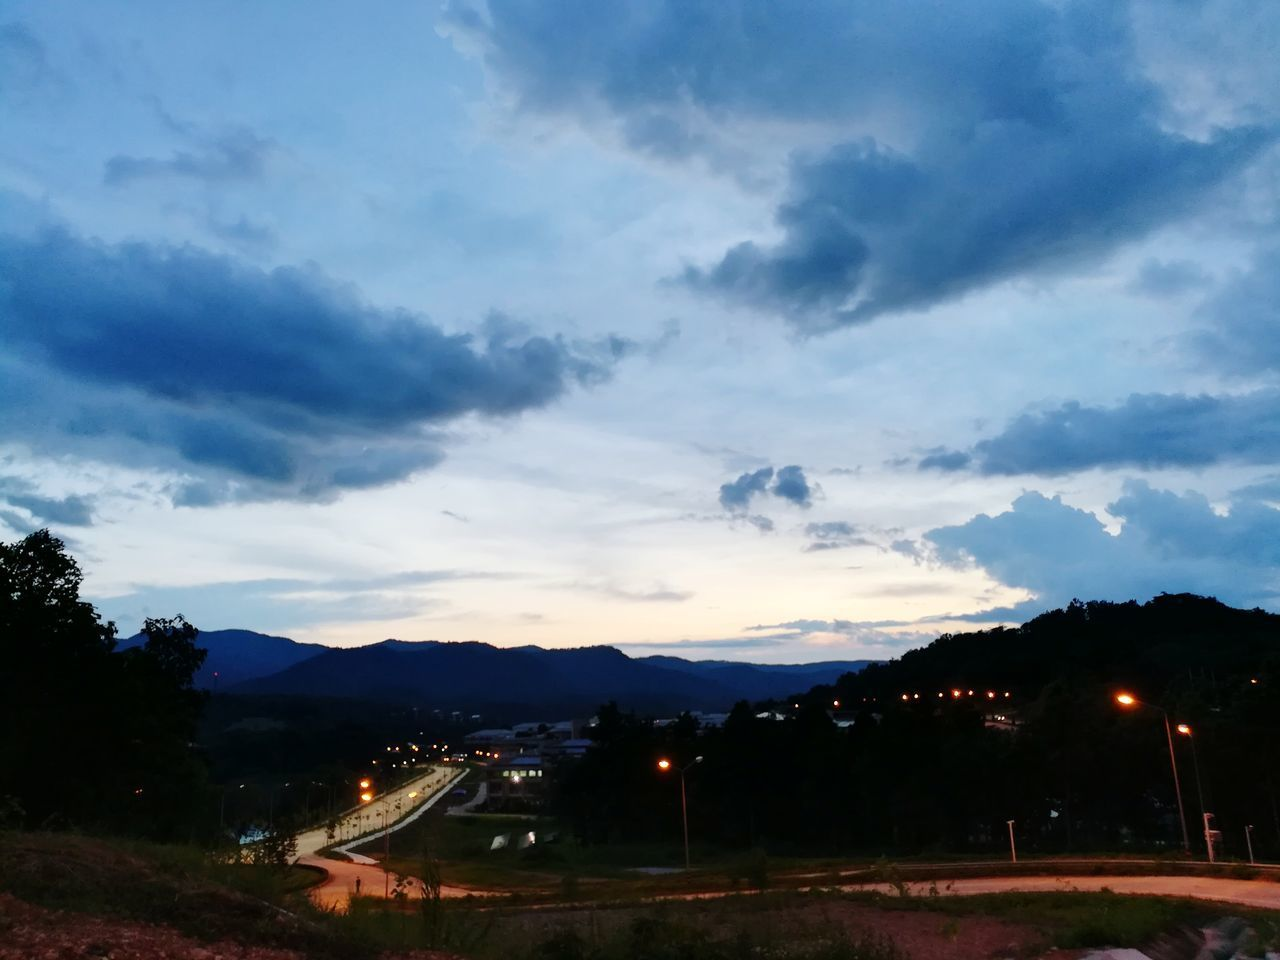 sky, cloud - sky, no people, outdoors, illuminated, scenics, beauty in nature, nature, tree, tranquility, night, mountain, architecture